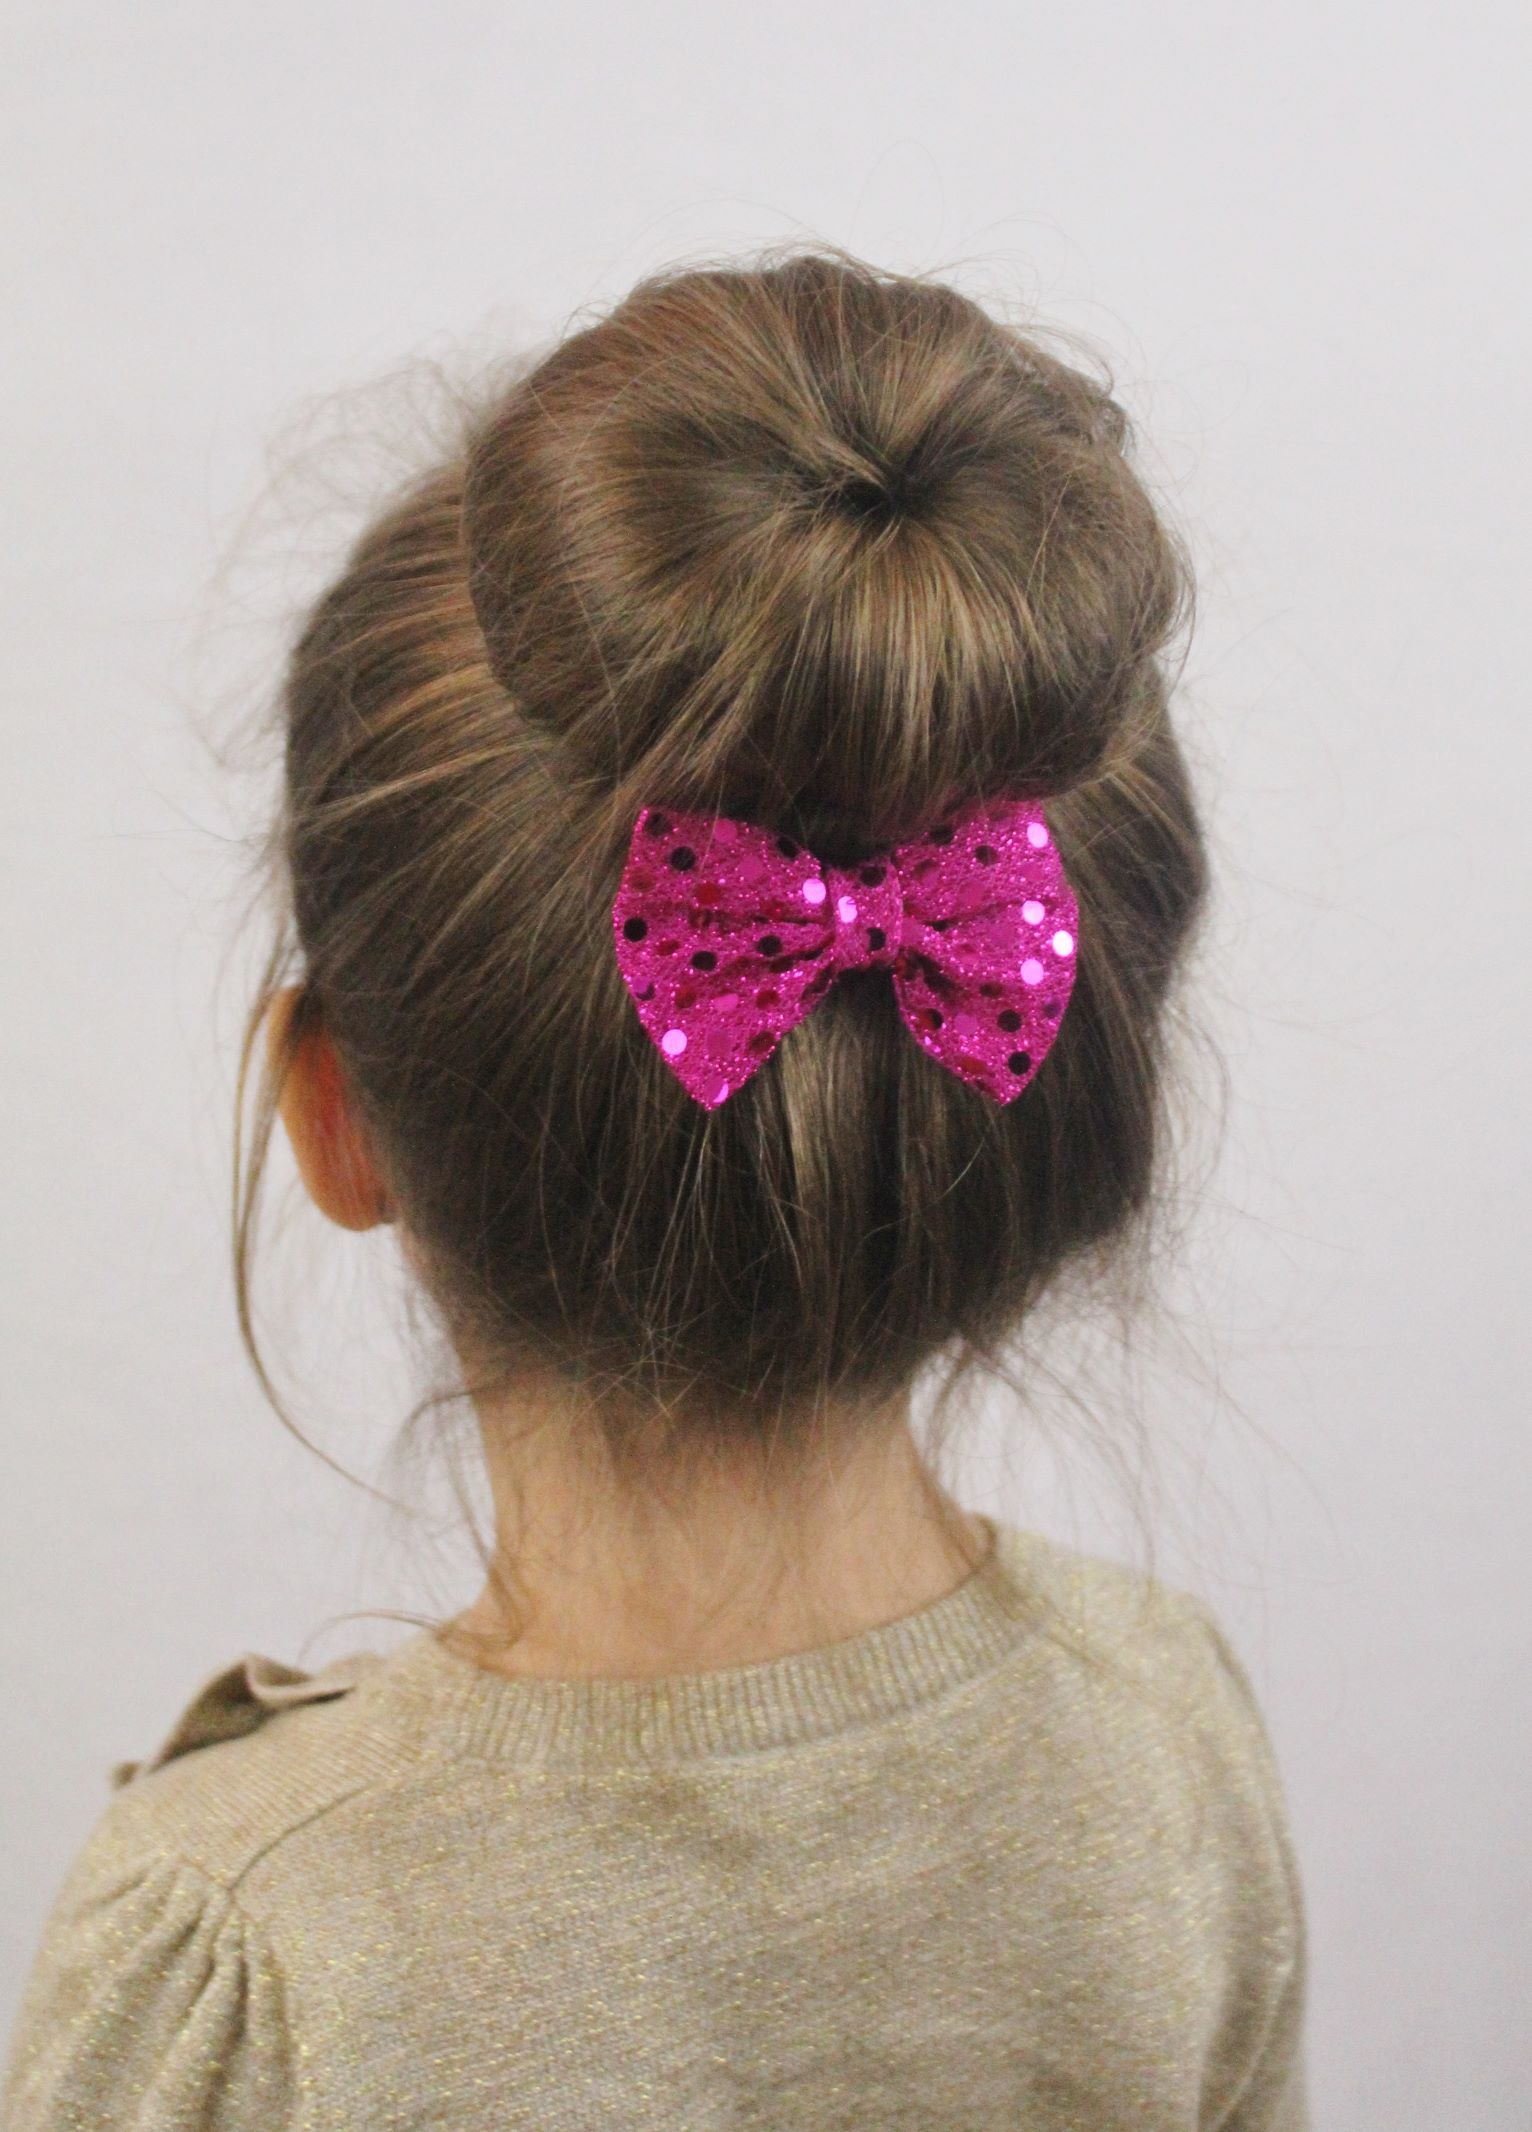 Awdder top knot hair how to would also work great on short sock bun hairstyle for little girls add purple ribbon around bun and tie now at bottom letting string hang down pmusecretfo Gallery